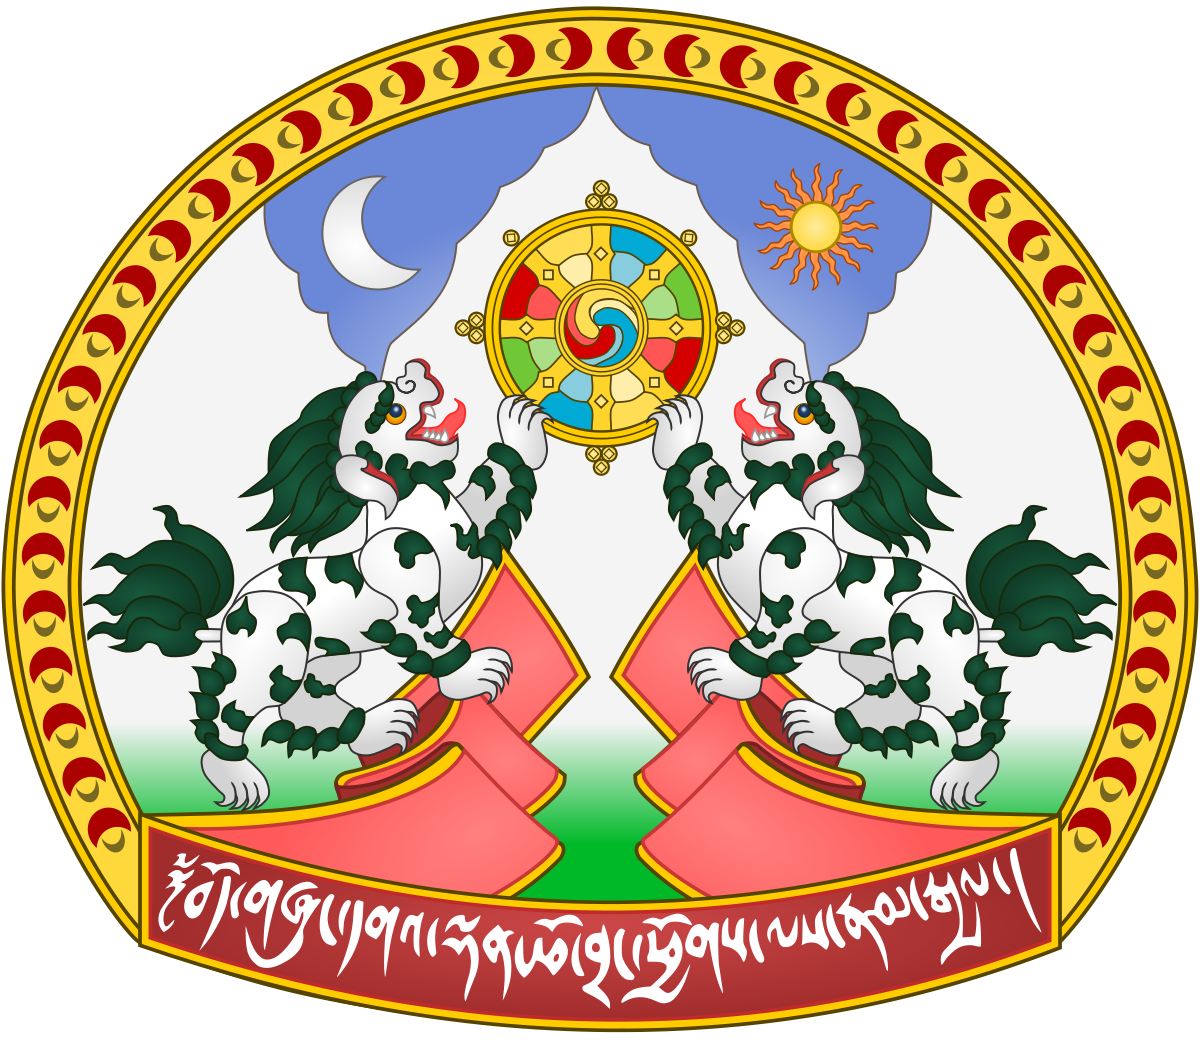 Parliament of the Central Tibetan Administration.